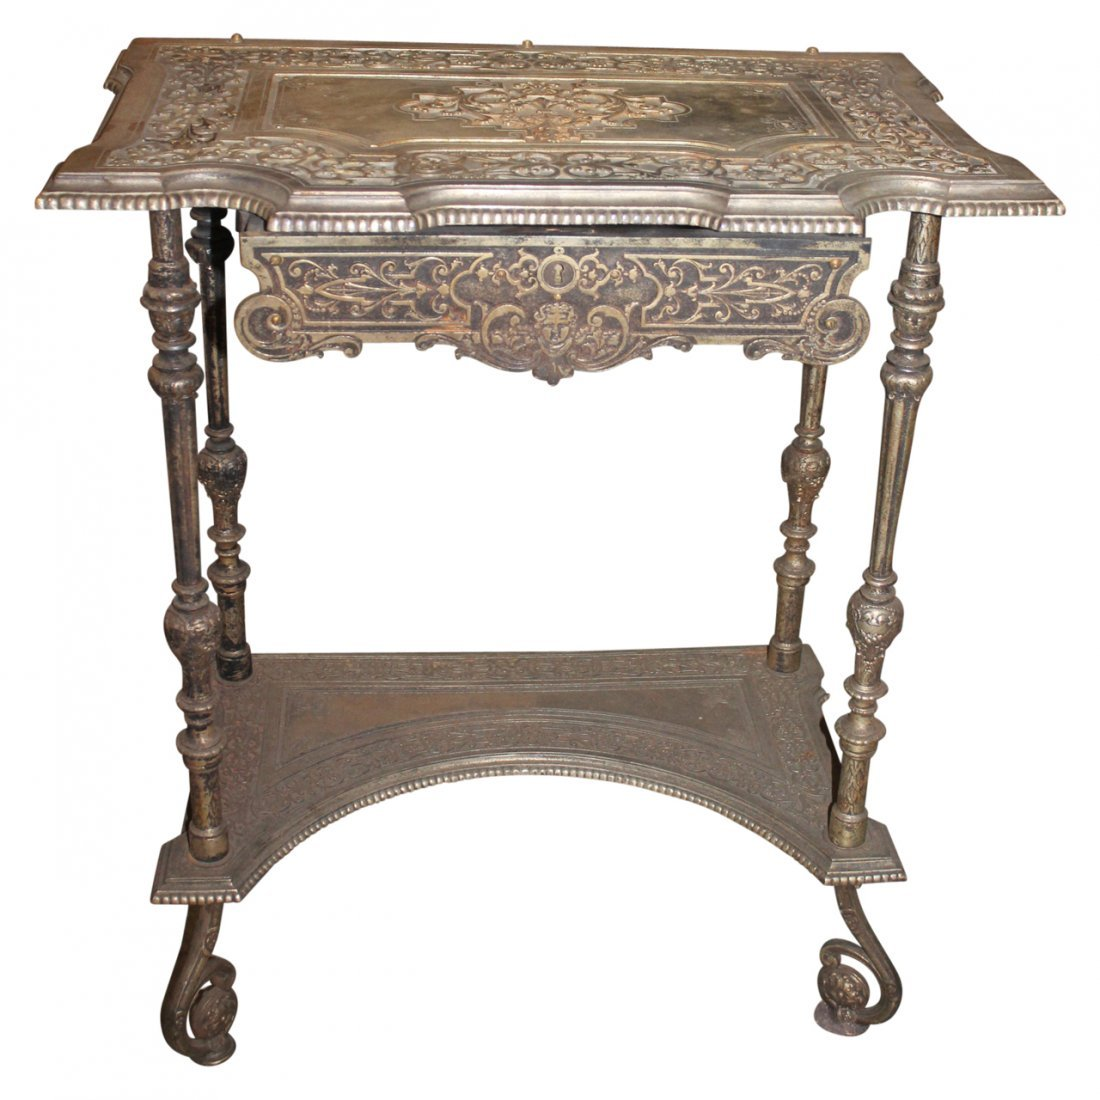 Antique Bronze or Brass Table